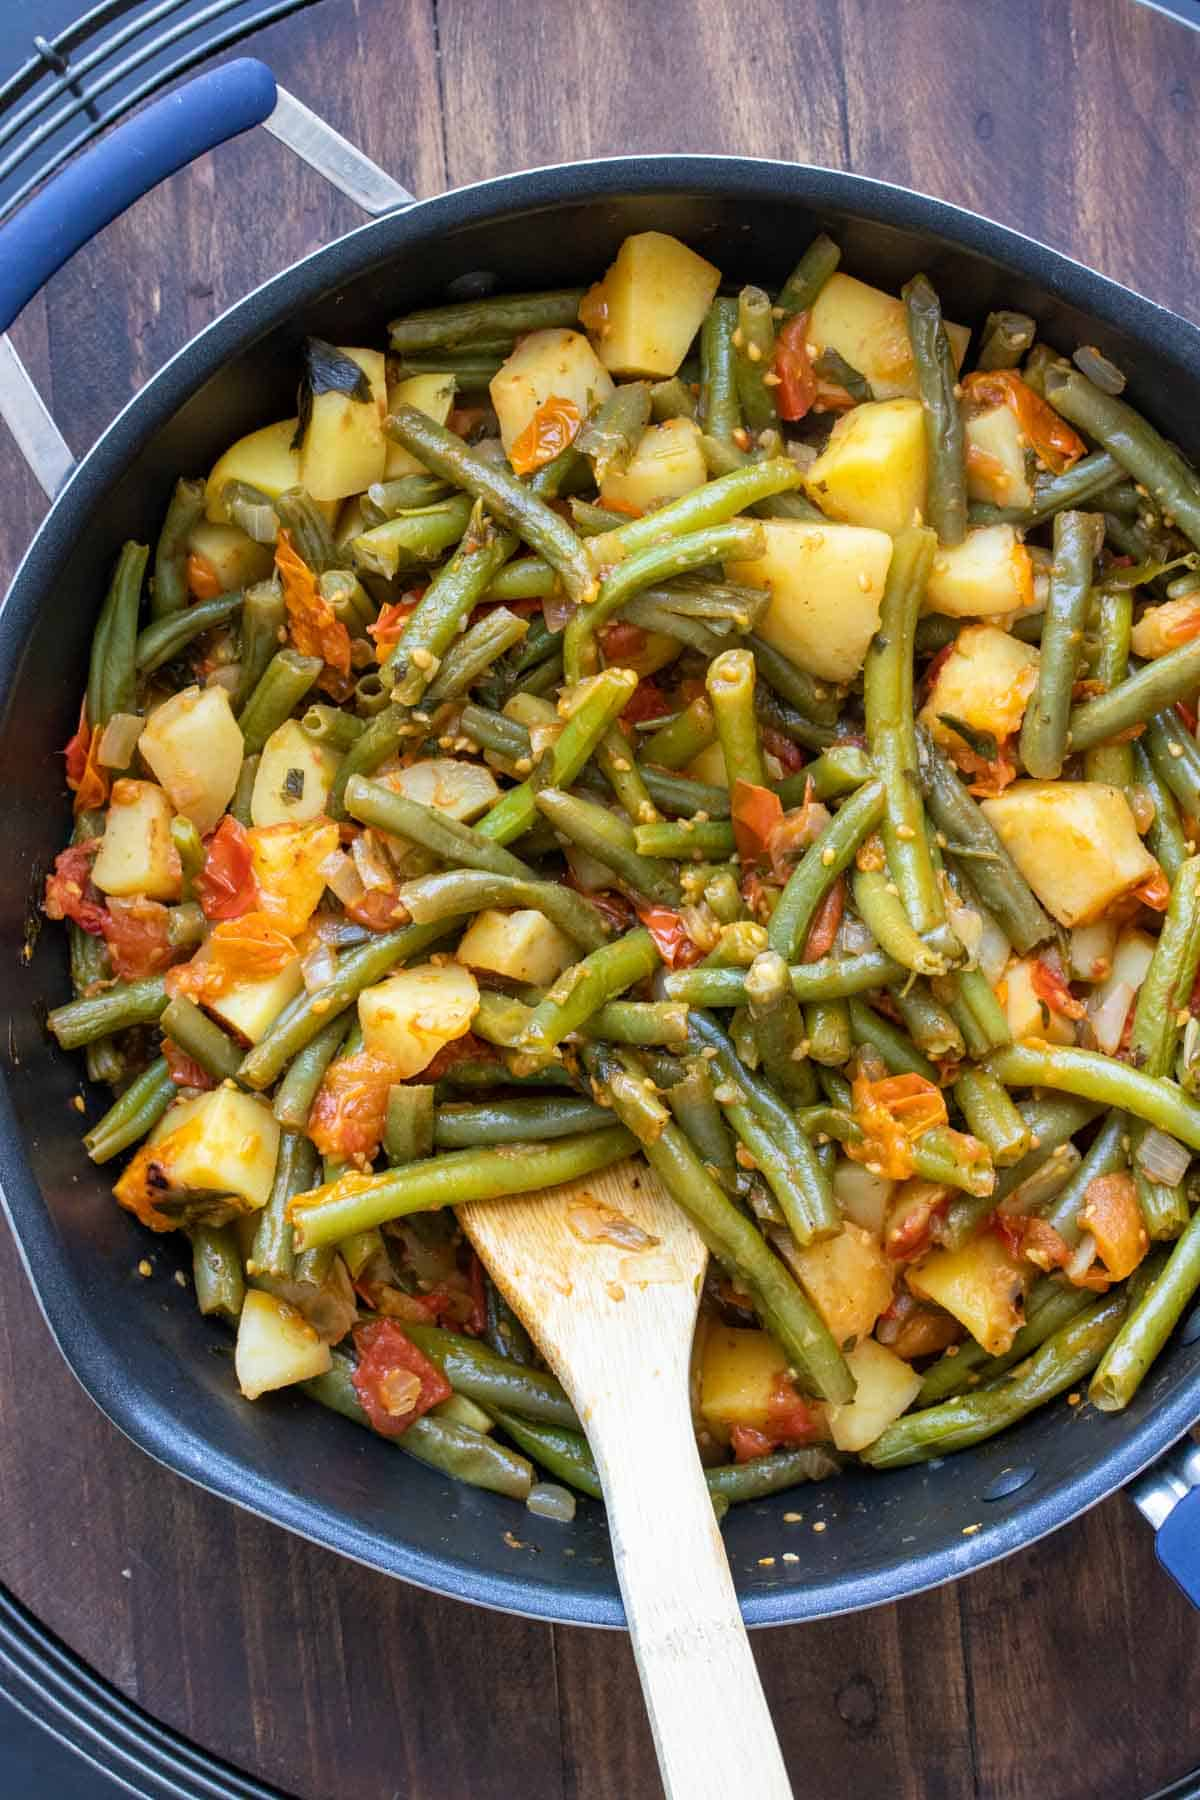 Cooked green beans with potatoes and tomatoes in a pan